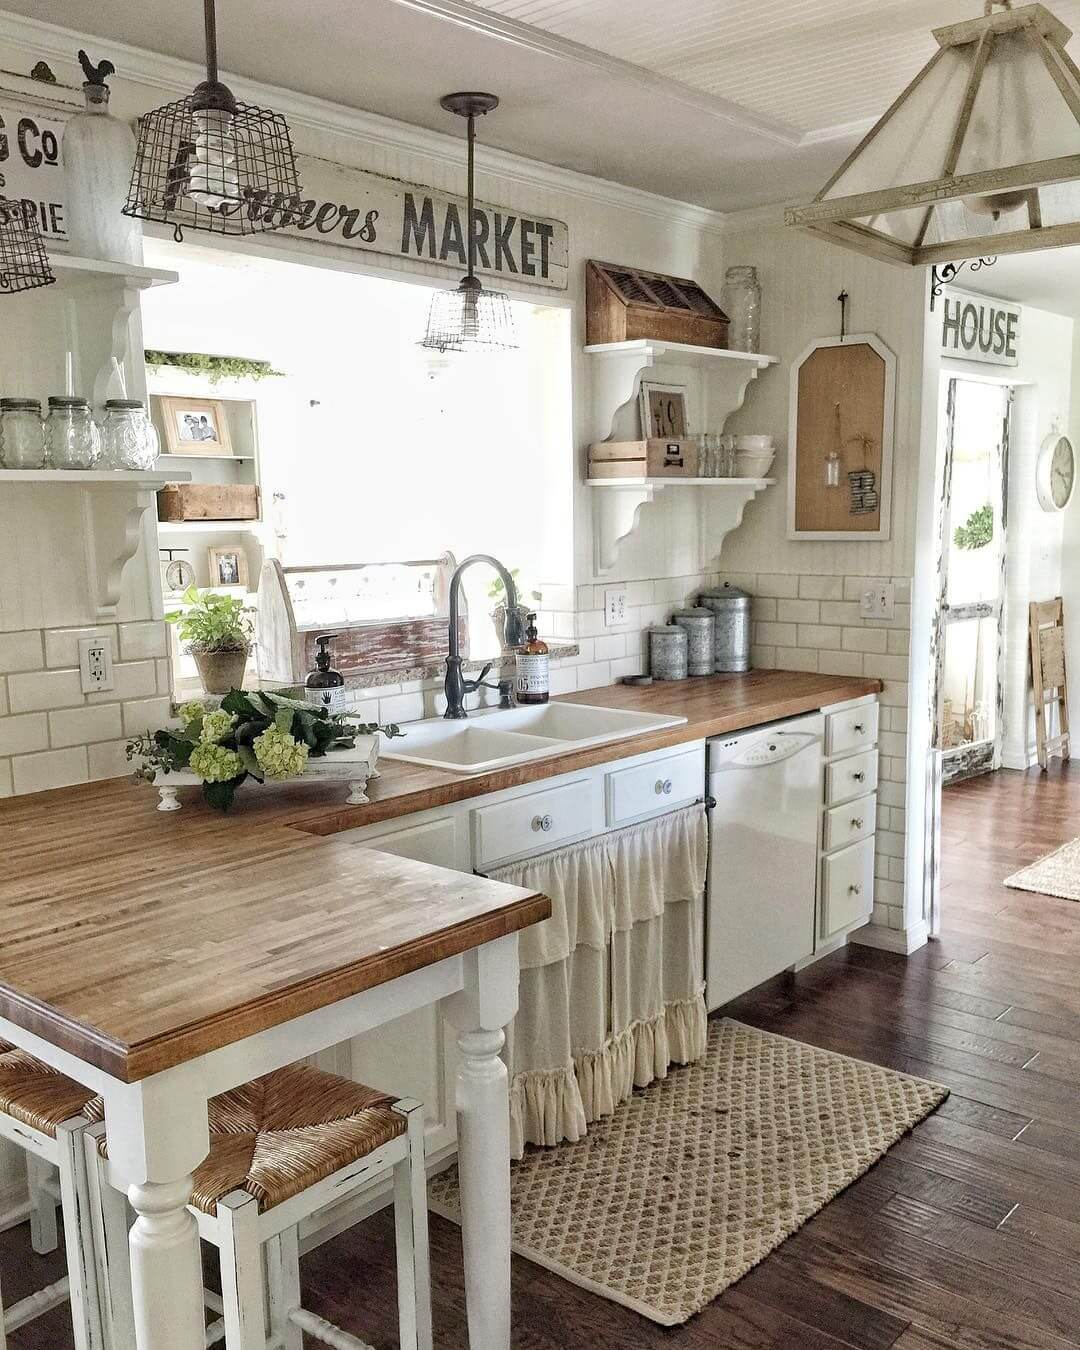 35 Best Farmhouse Kitchen Cabinet Ideas and Designs for 2020 on Farmhouse Kitchen Ideas  id=69930